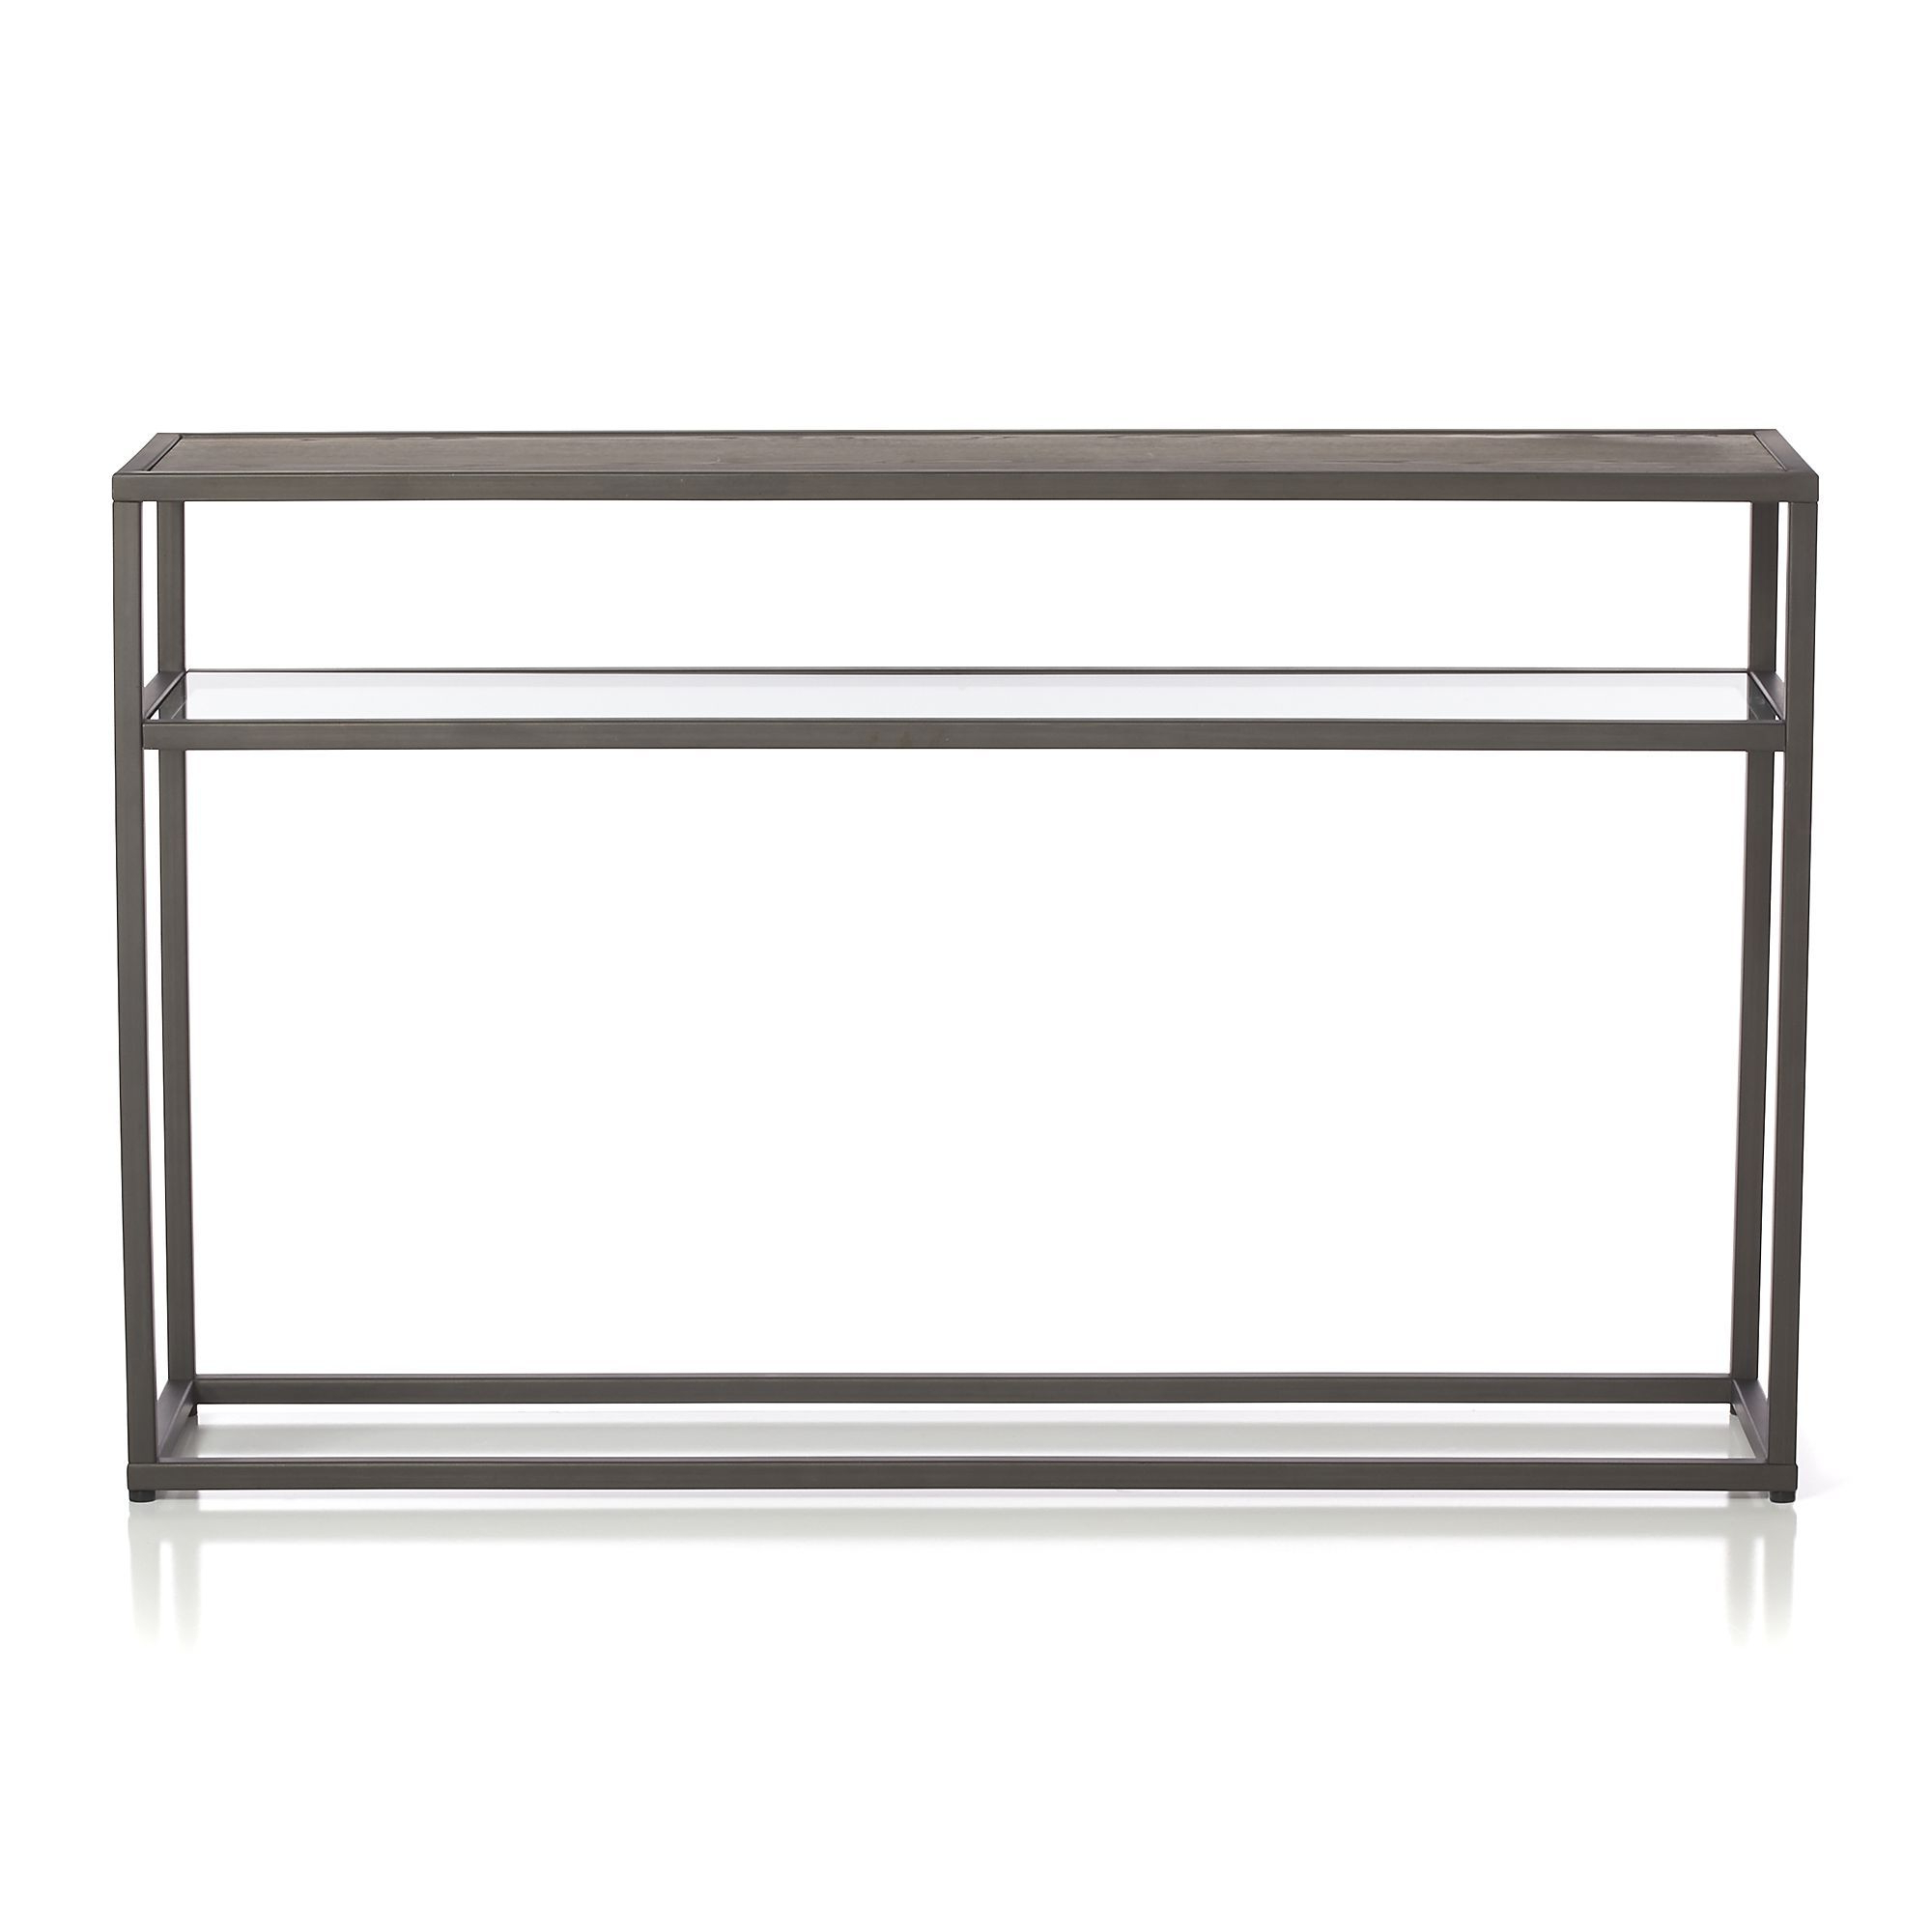 Switch Console Table | Crate And Barrel | Apartment Stuff With Regard To Switch Console Tables (Gallery 2 of 20)